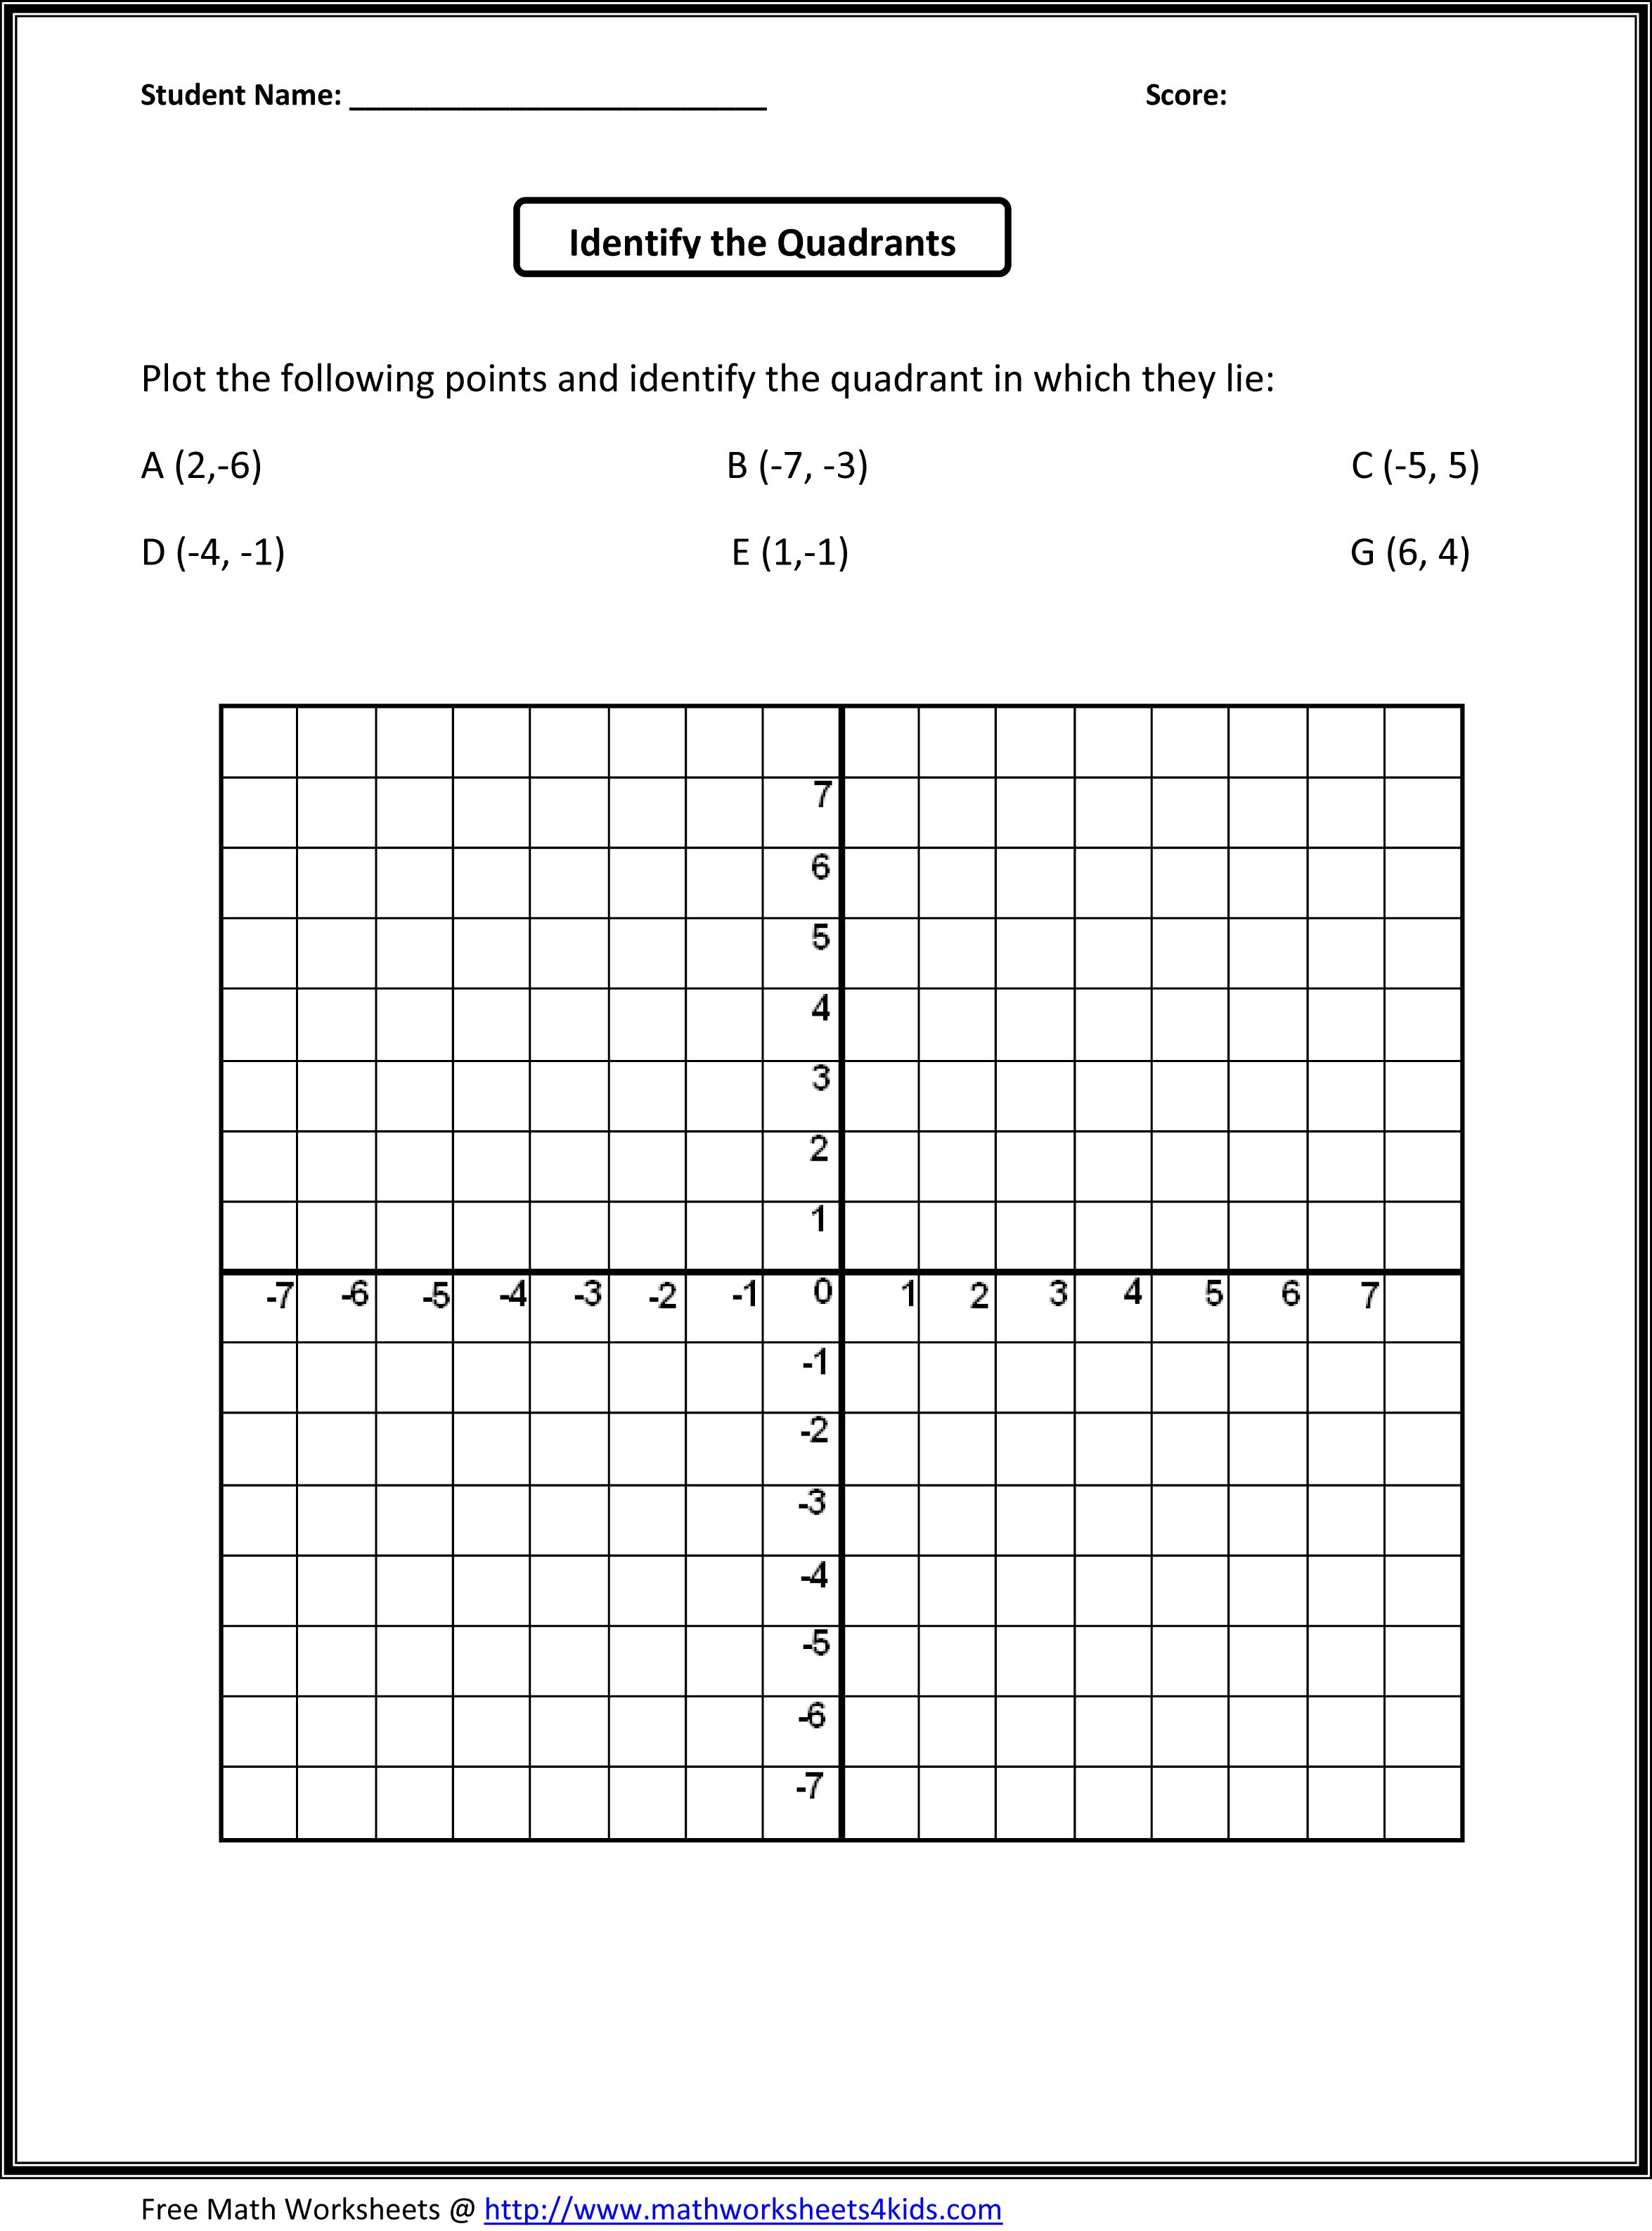 Worksheet Math Printable Worksheets For 5th Grade 1000 images about summer school on pinterest 5th grade math worksheets and worksheets